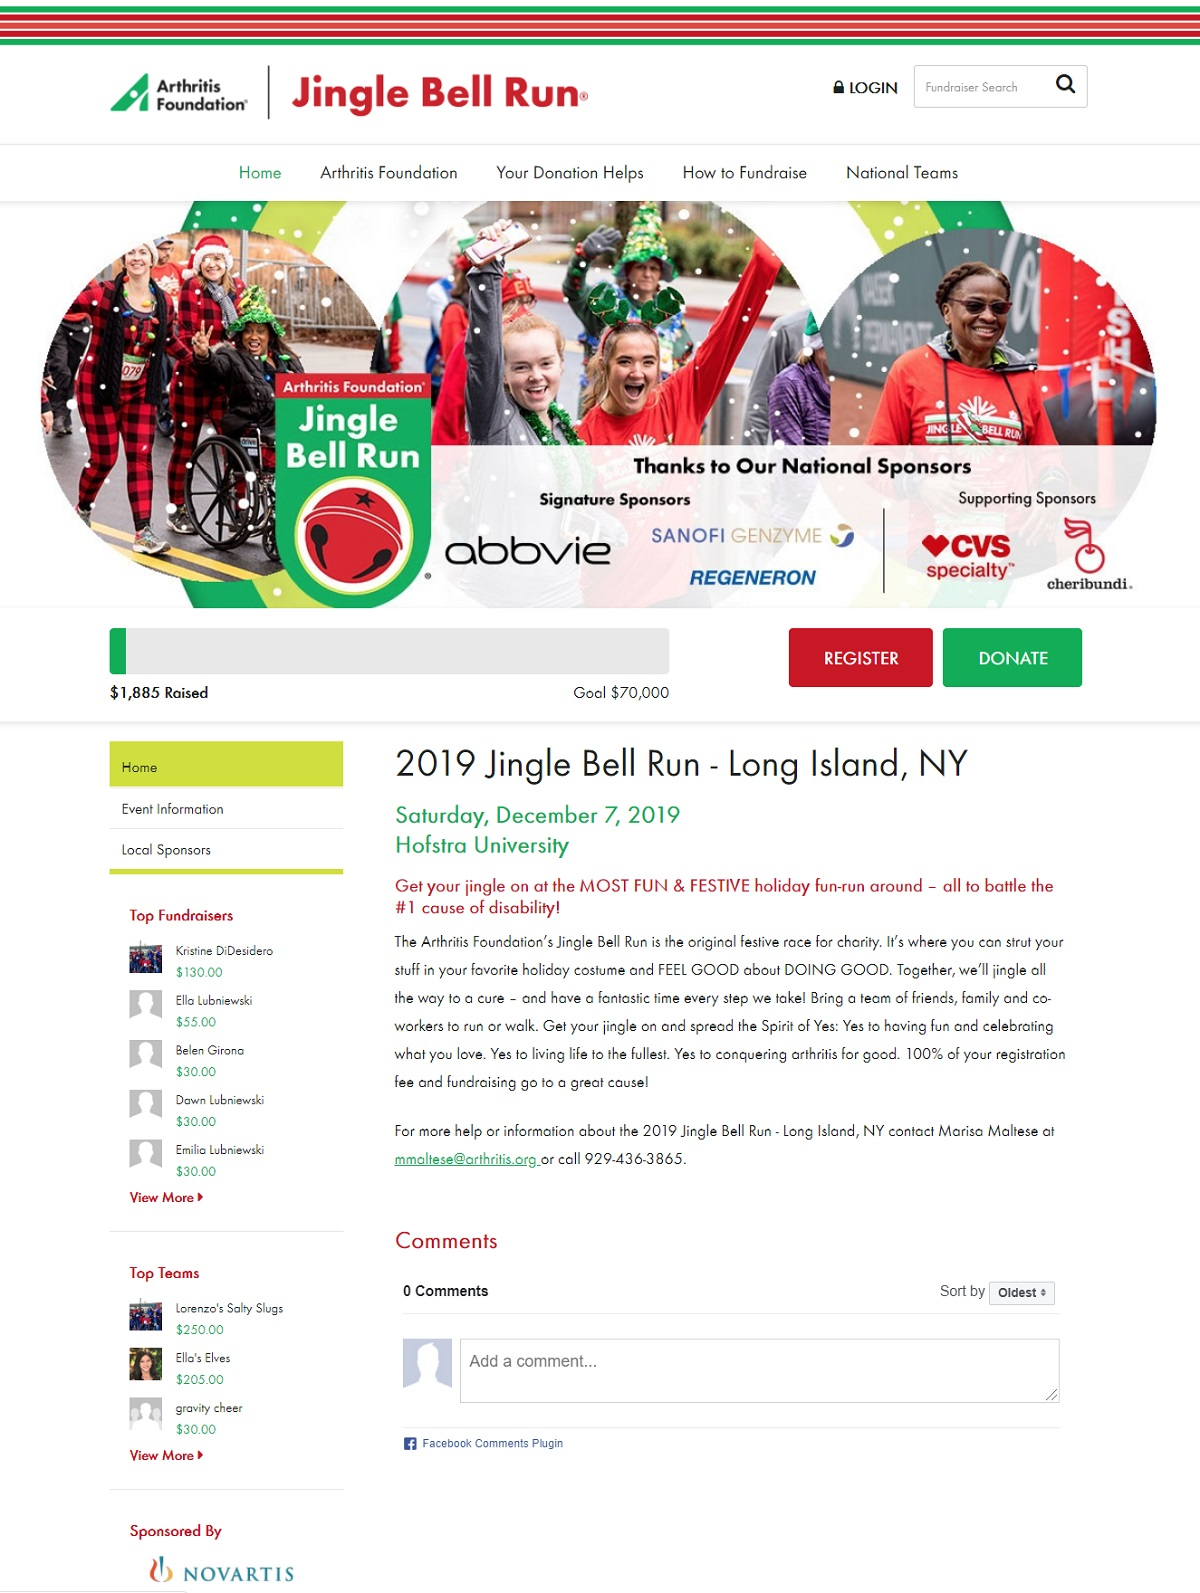 Jingle Bell website screenshot